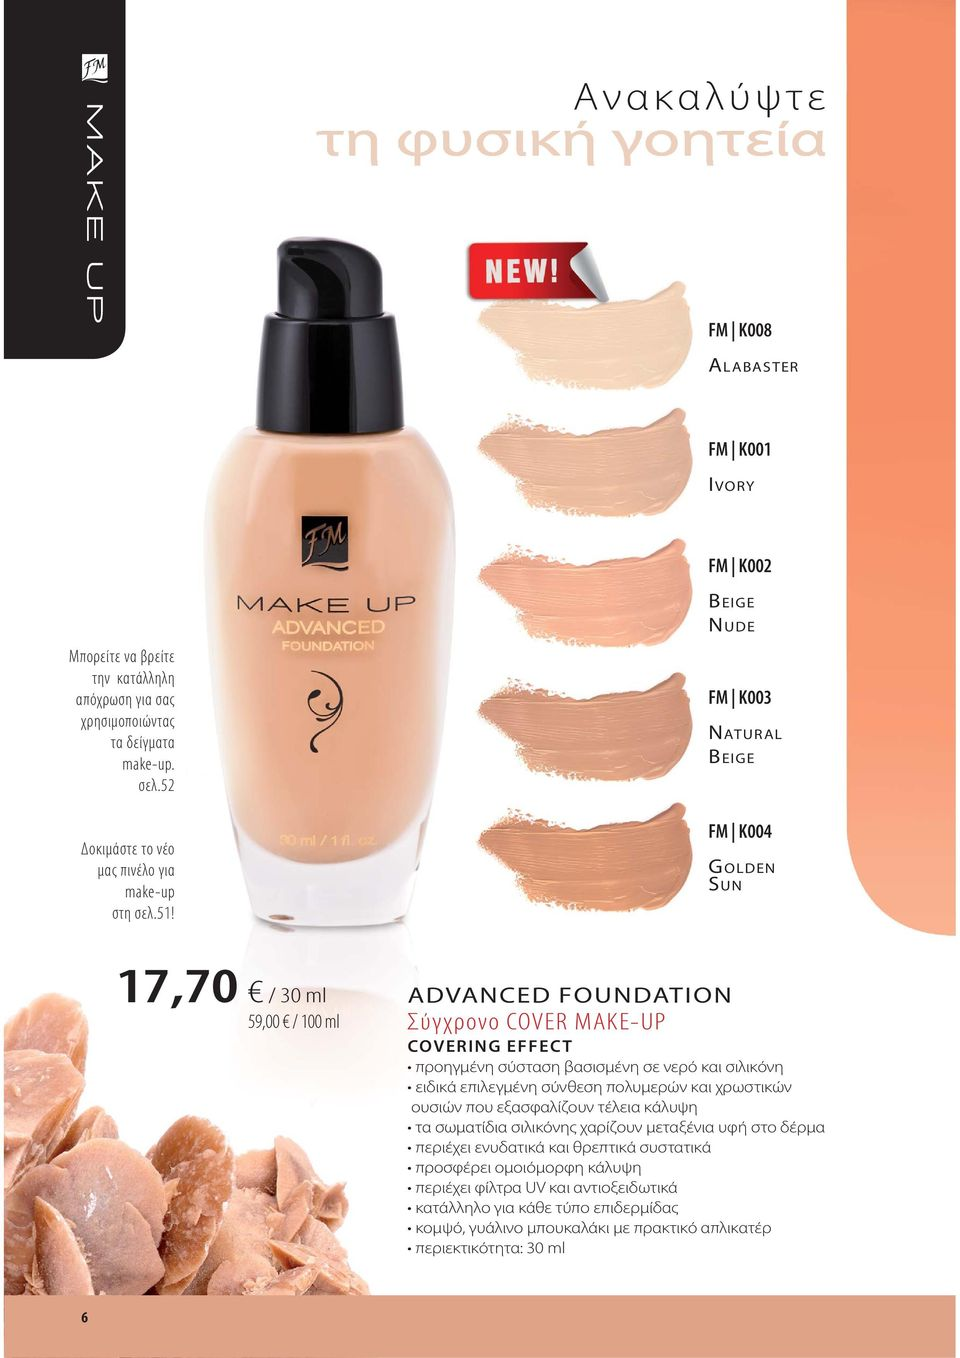 CINNAMON IVORY FM K002 BEIGE NUDE FM K003 NATURAL BEIGE FM K004 GOLDEN SUN 17,70 / 30 ml 59,00 / 100 ml ADVANCED FOUNDATION Σύγχρονο COVER MAKE-UP COVERING EFFECT προηγμένη σύσταση βασισμένη σε νερό